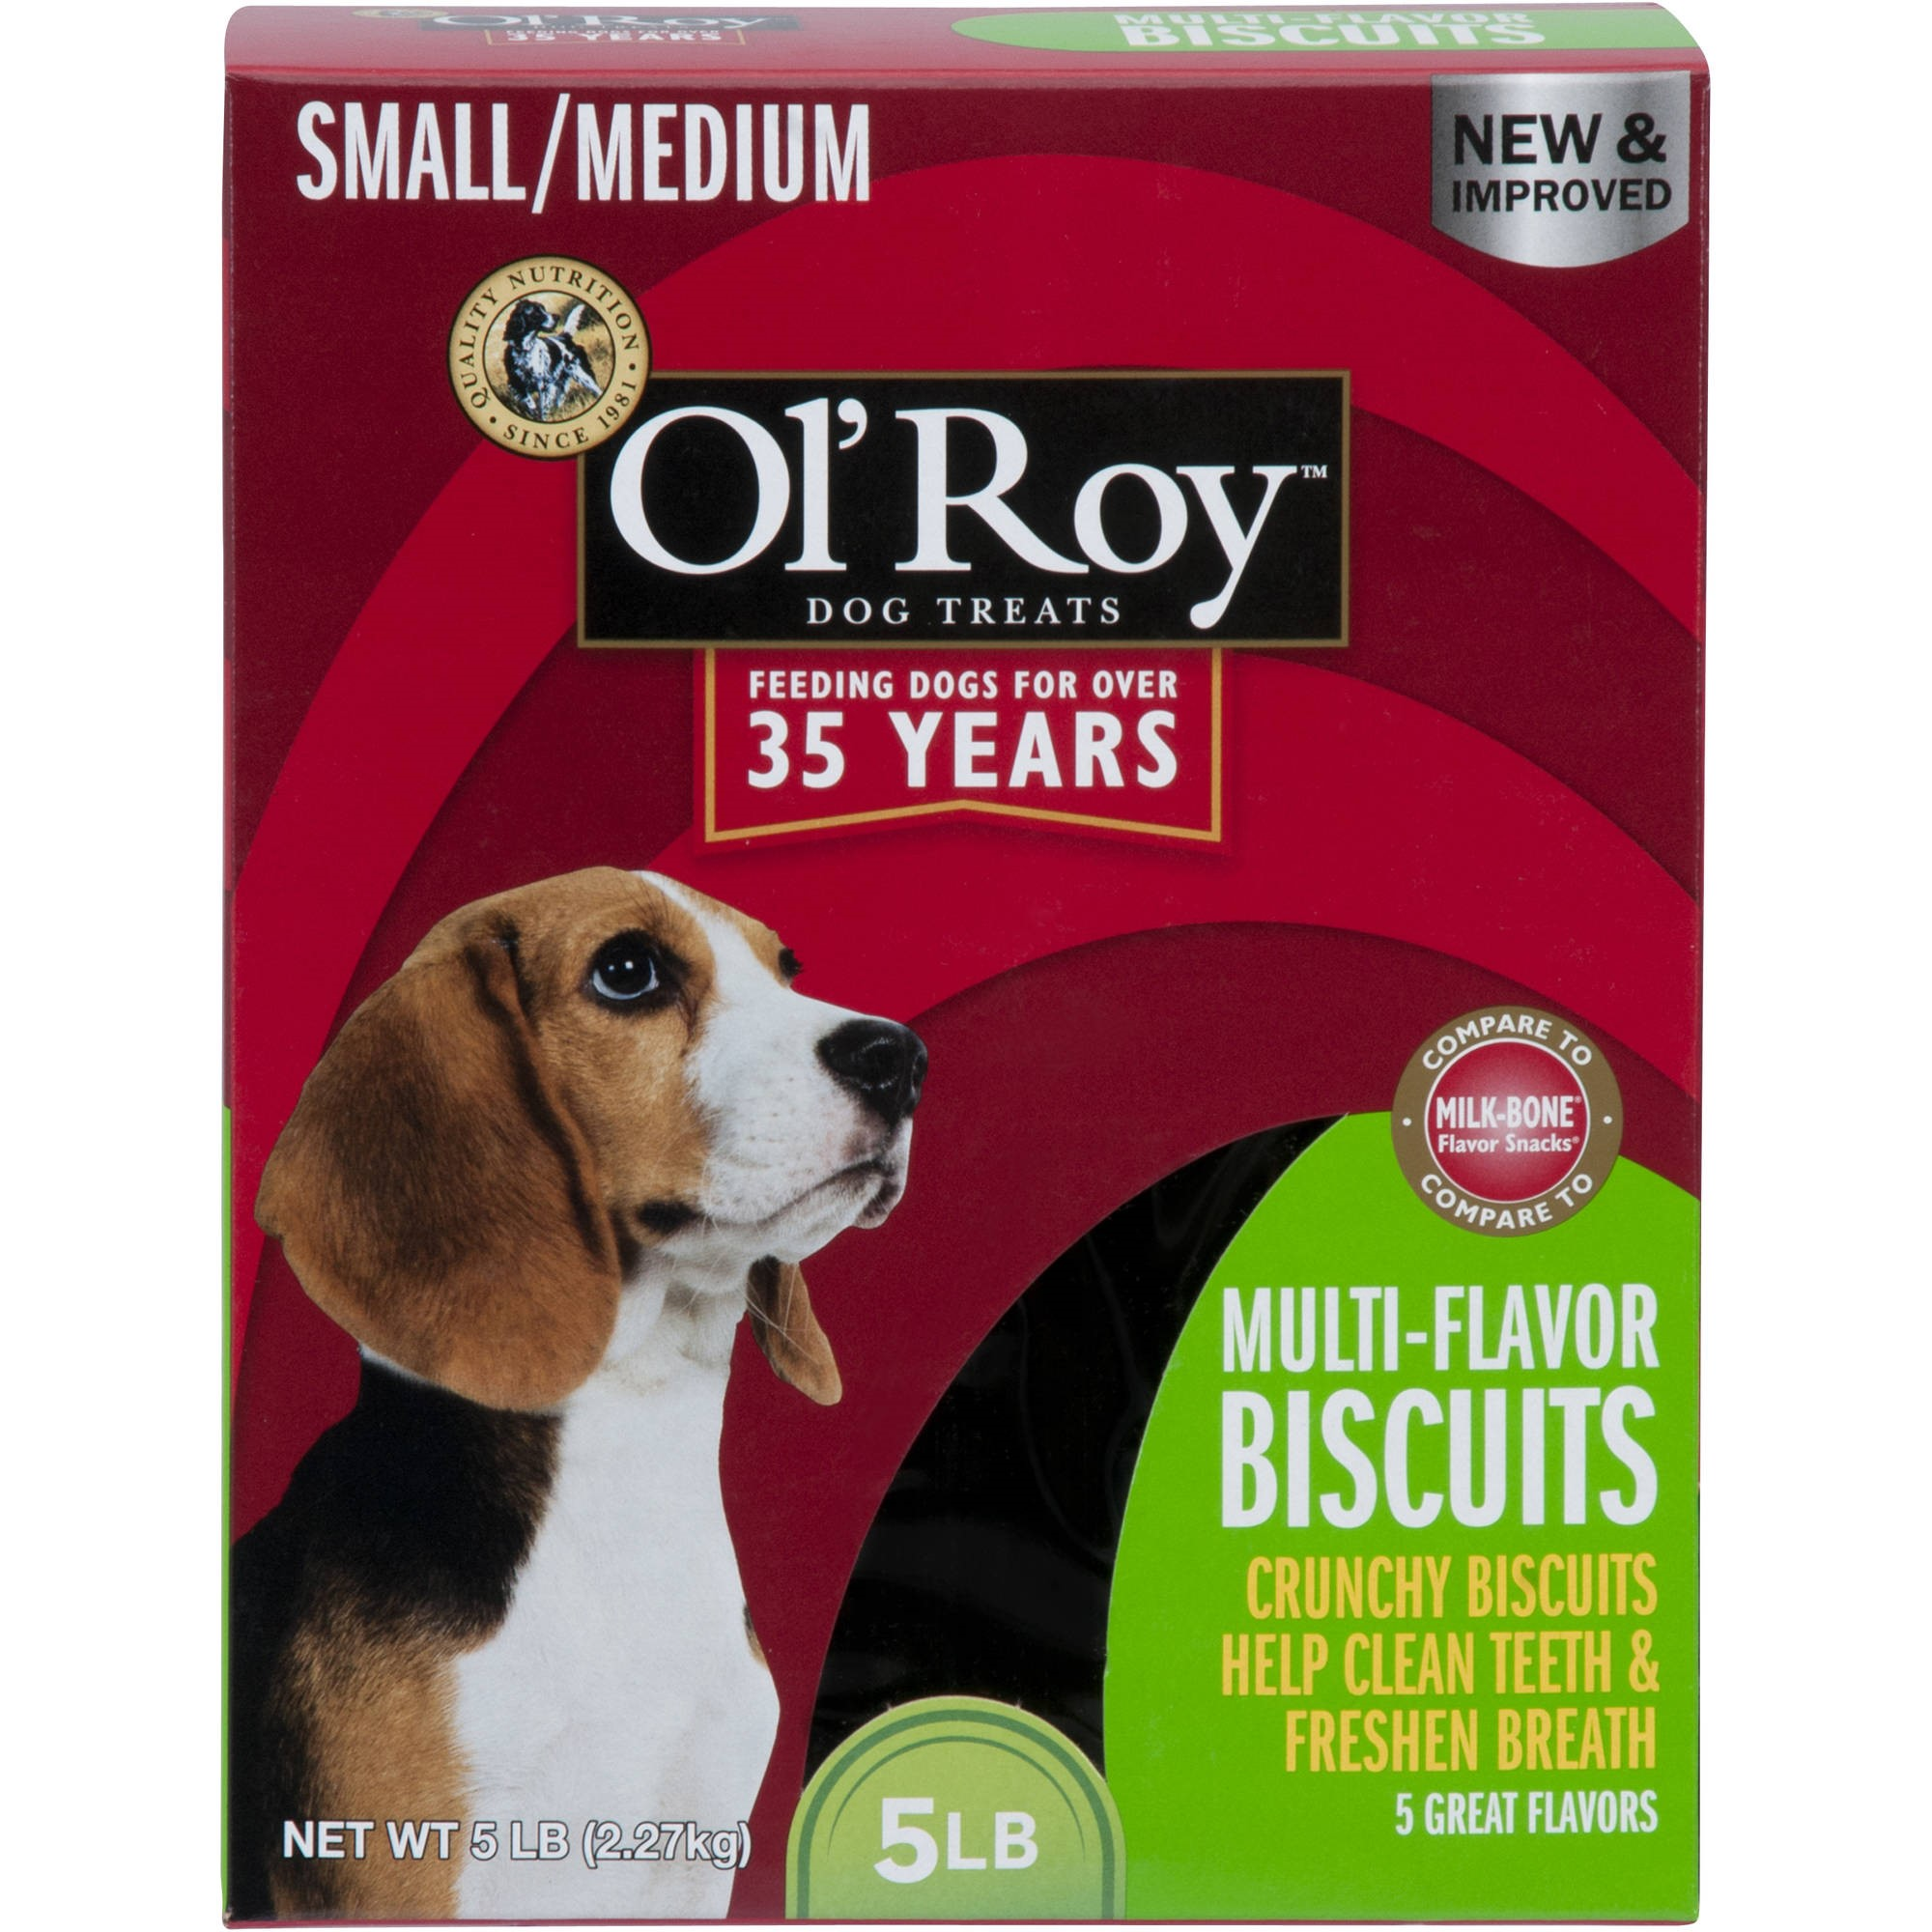 Ol' Roy Multi-Flavor Dog Biscuits, Small/Medium, 5 lb